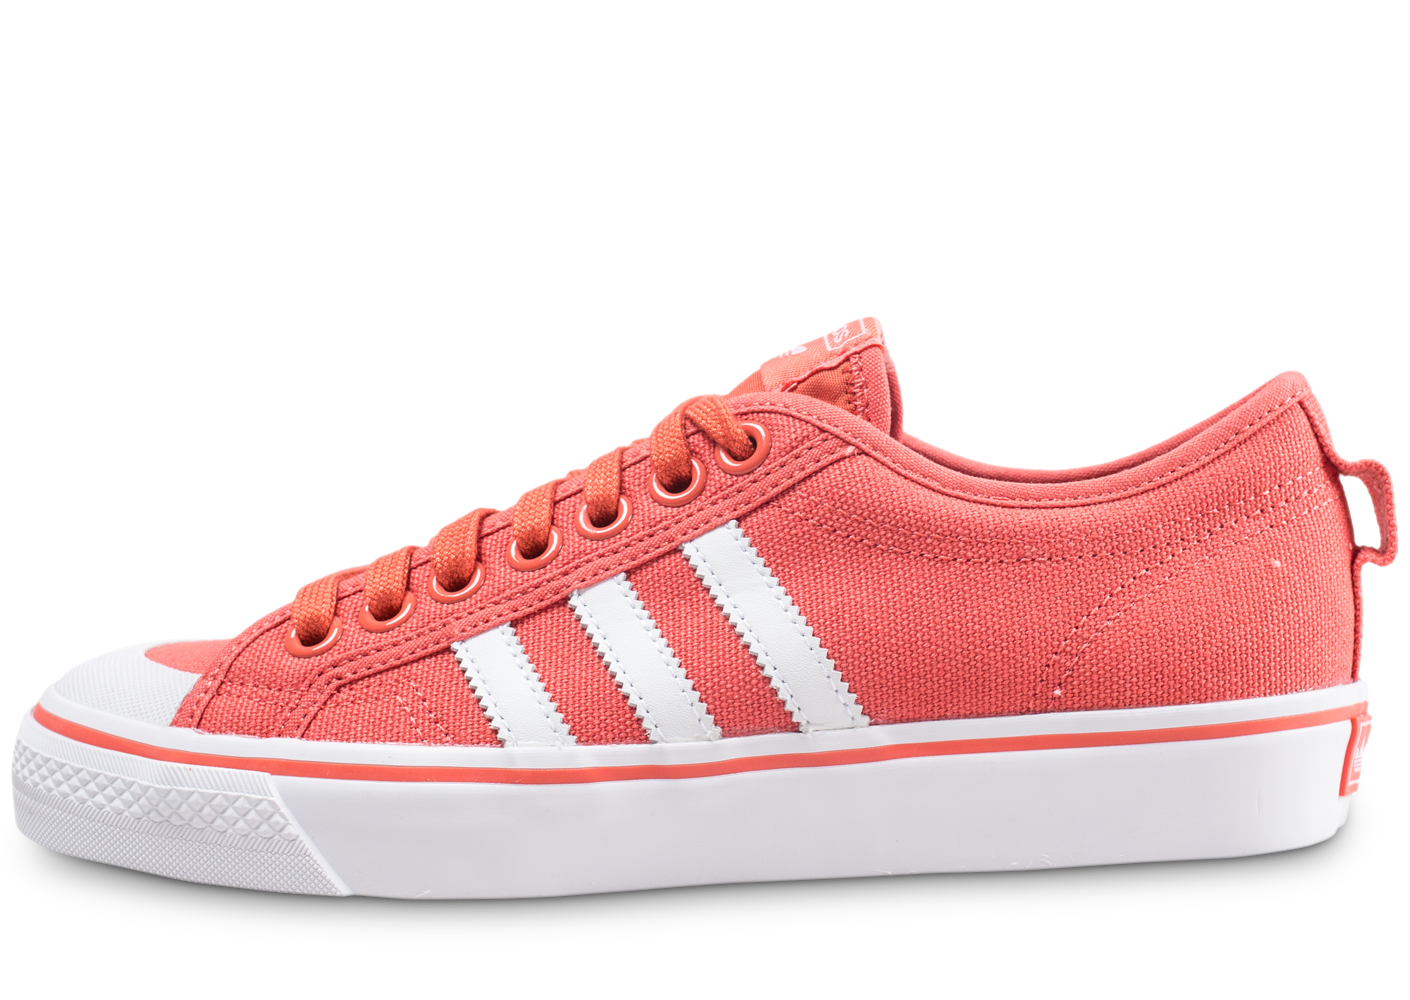 Adidas homme nizza rouge baskets